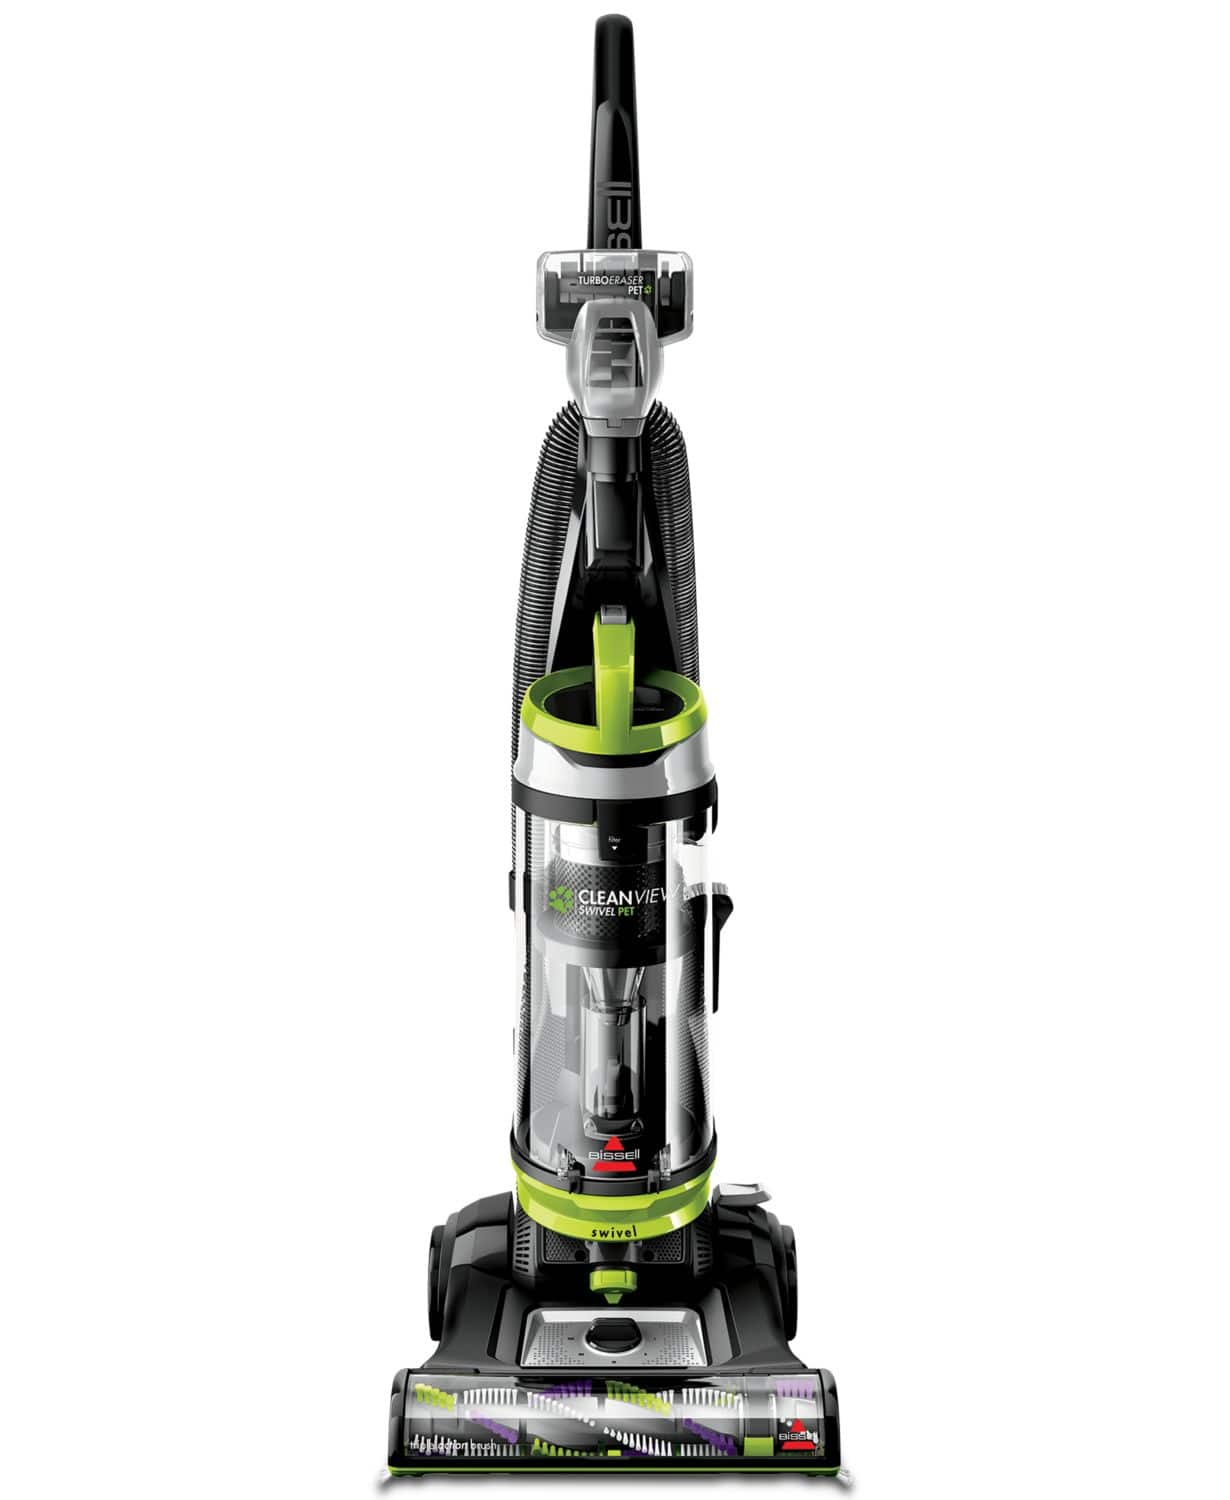 2316 CleanView Swivel Pet Vacuum - $78.99 + Free Shipping